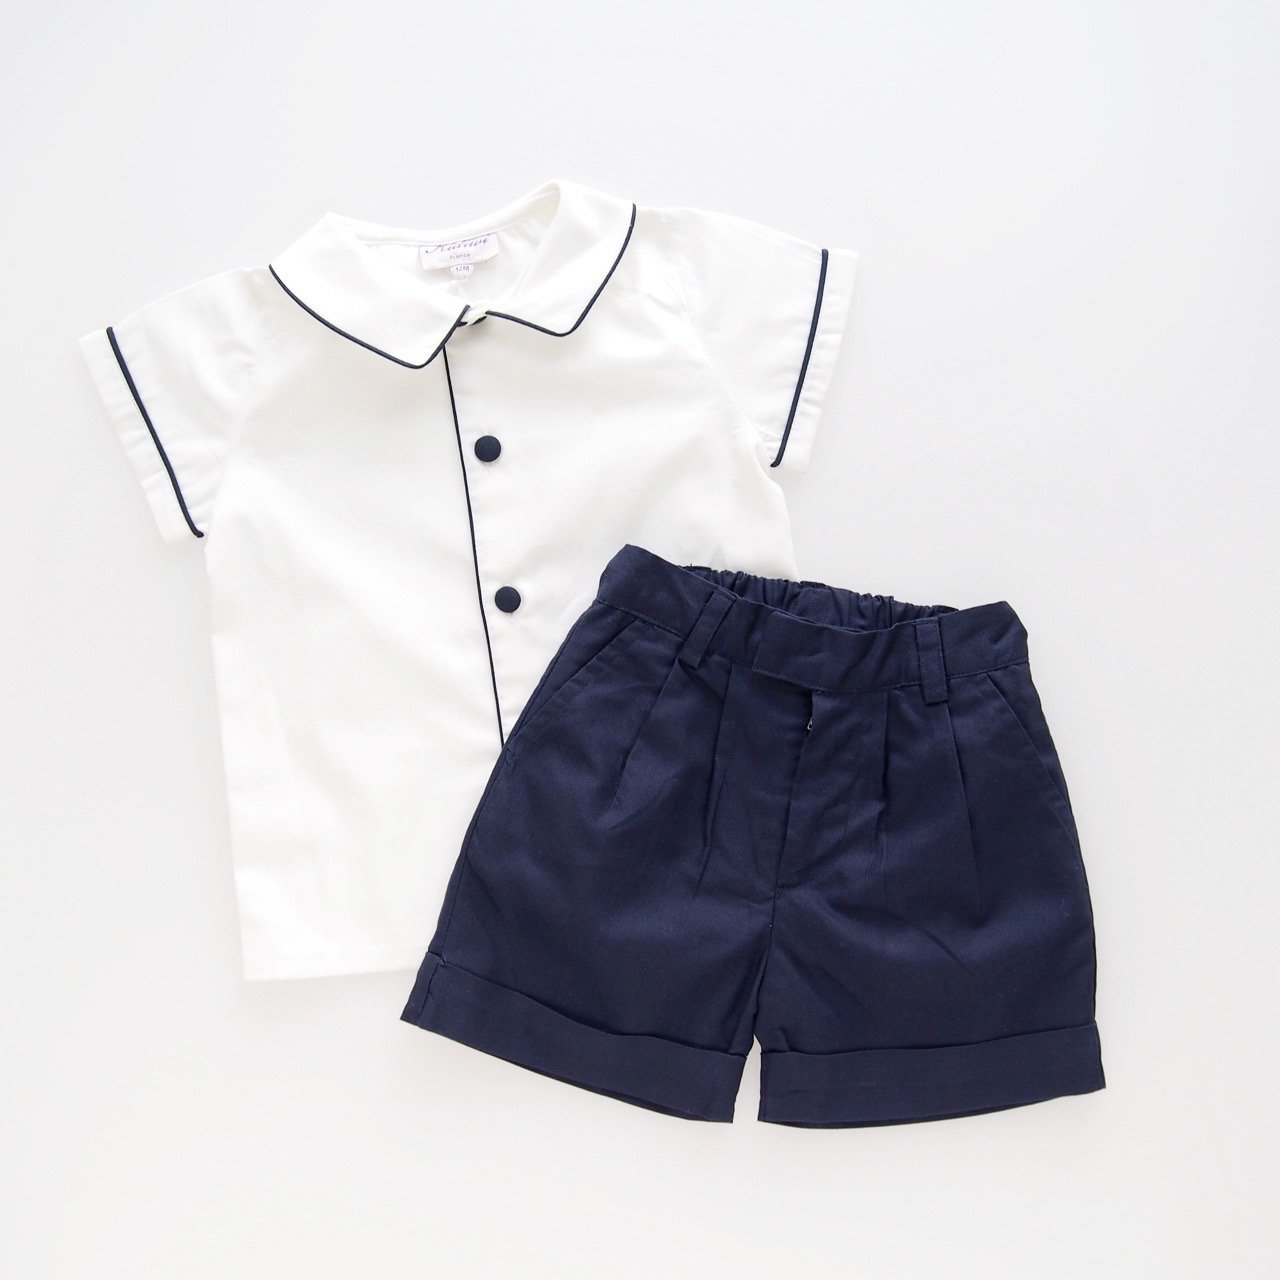 <img class='new_mark_img1' src='https://img.shop-pro.jp/img/new/icons14.gif' style='border:none;display:inline;margin:0px;padding:0px;width:auto;' />Kidiwi - LUCIEN boy's shirt and shorts set (Navy)